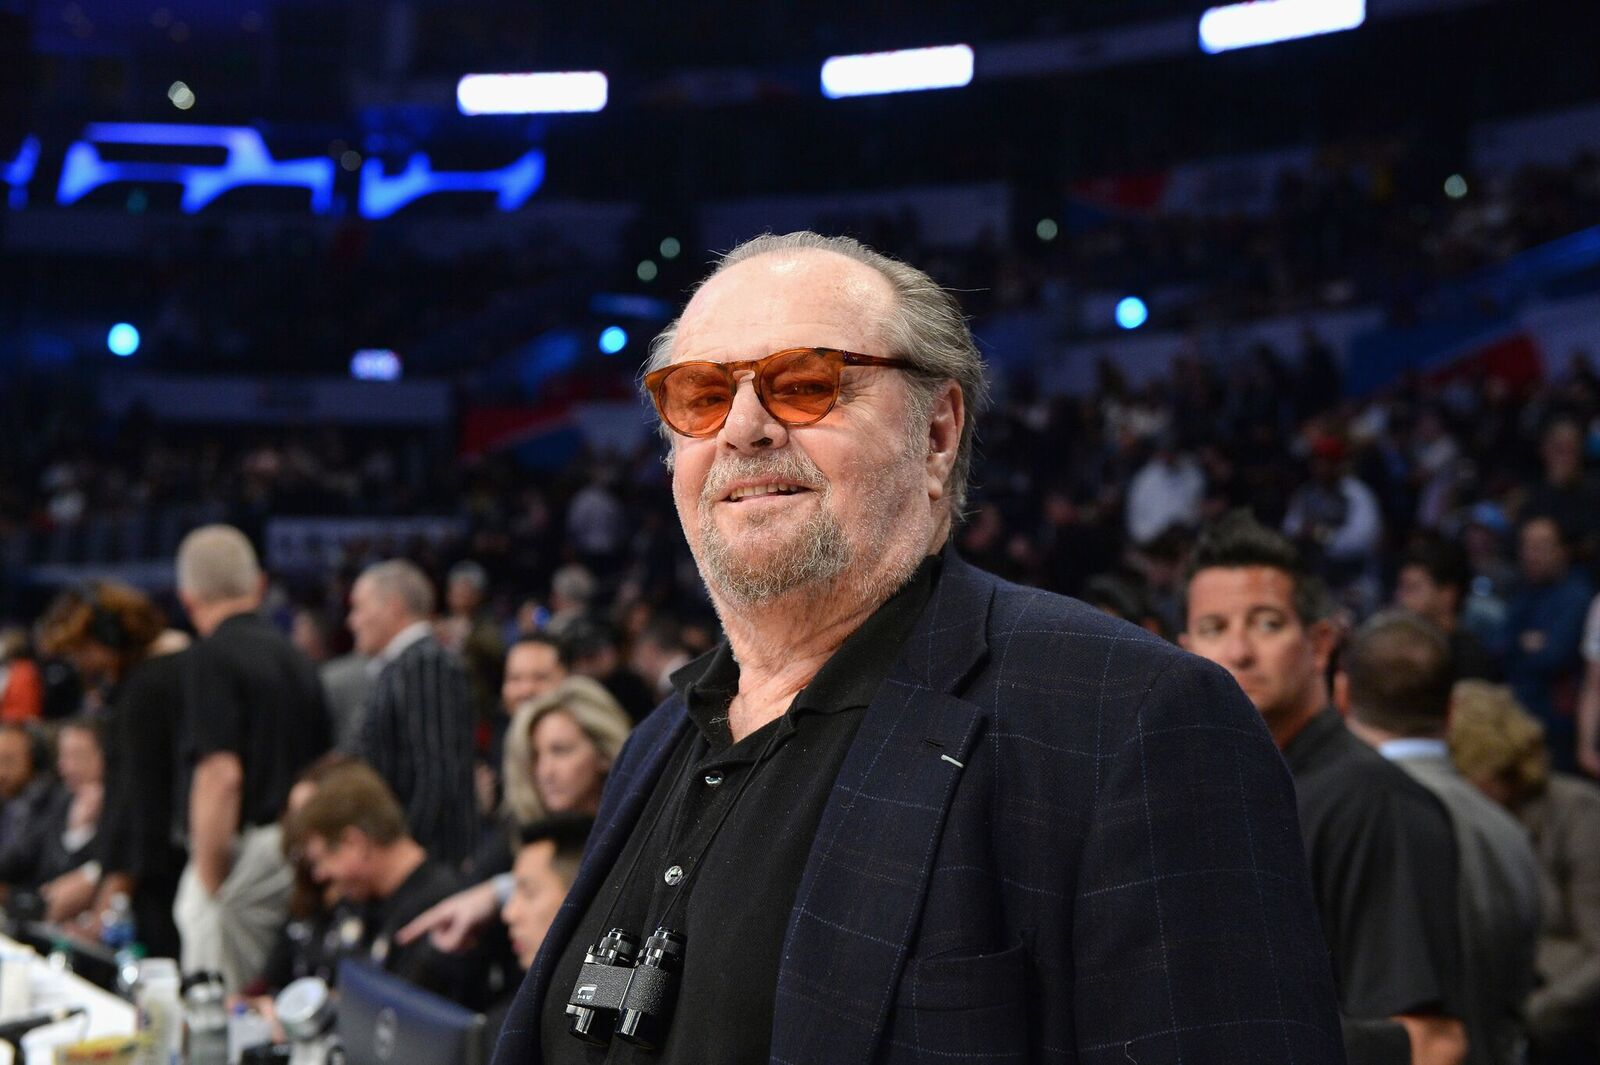 Jack Nicholson attends the NBA All-Star Game 2018 at Staples Center on February 18, 2018 | Photo: Getty Images